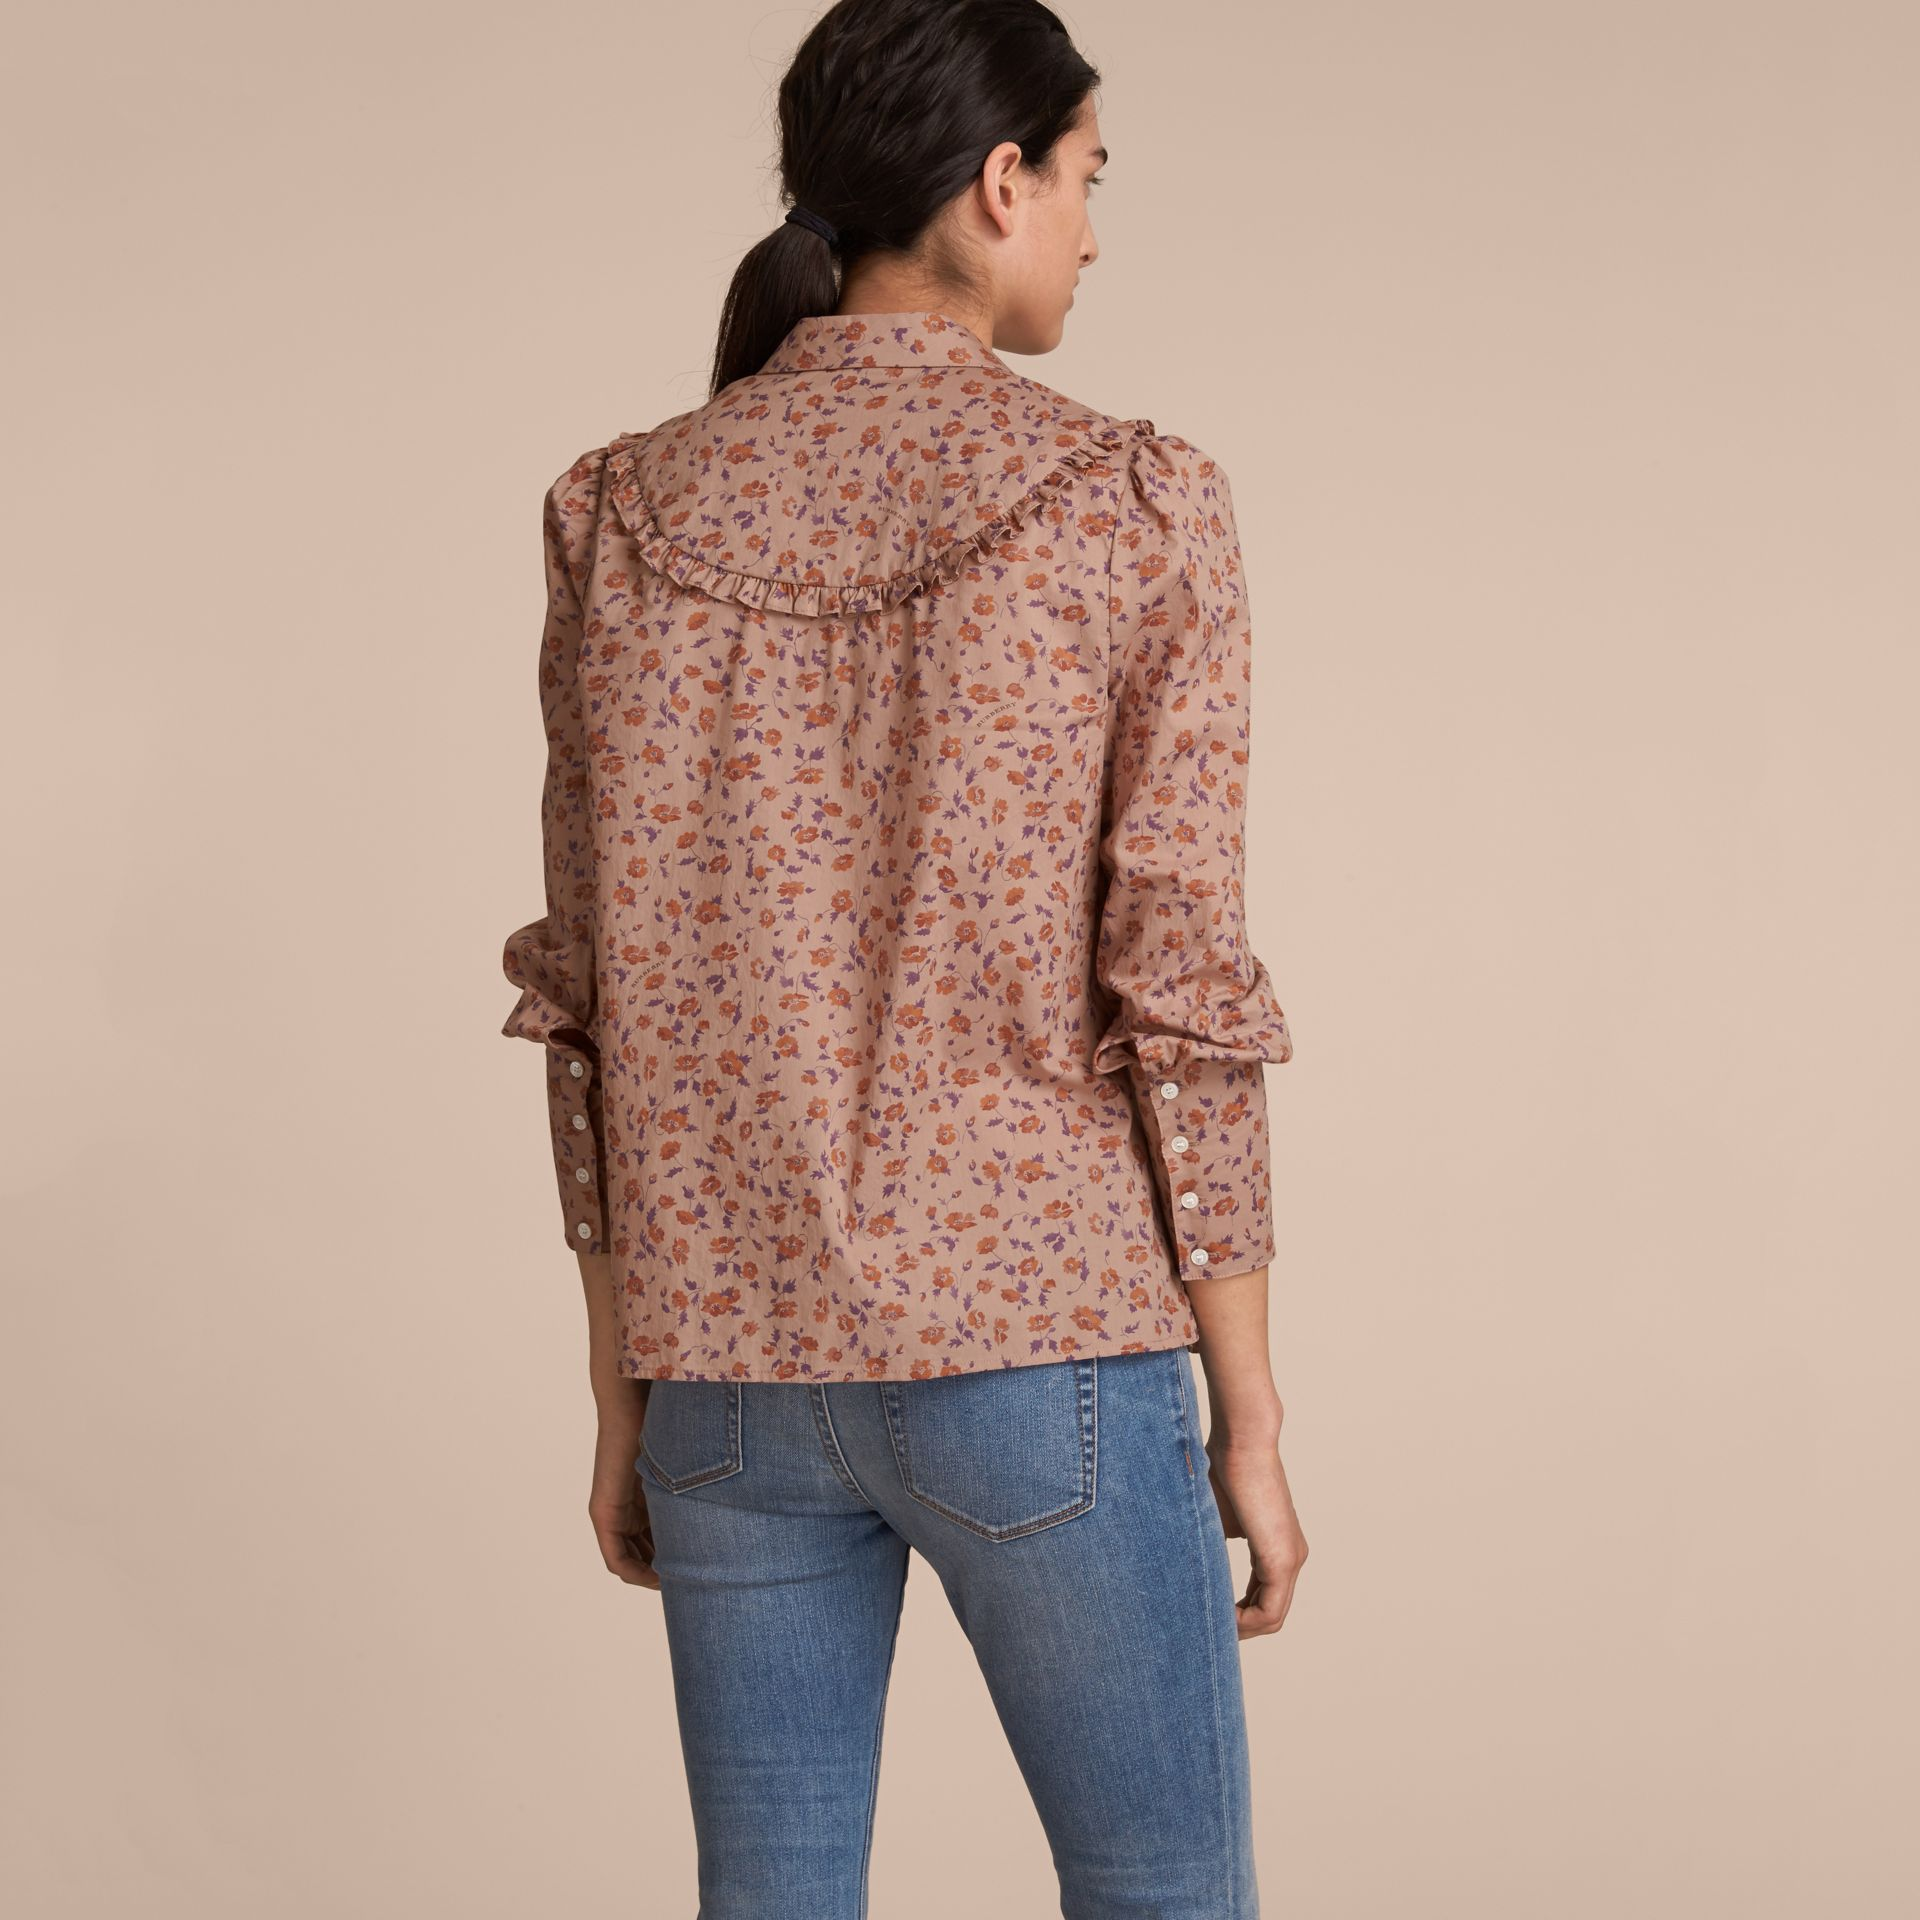 Ruffle Yoke Floral Print Cotton Shirt in Light Copper - Women | Burberry Singapore - gallery image 3